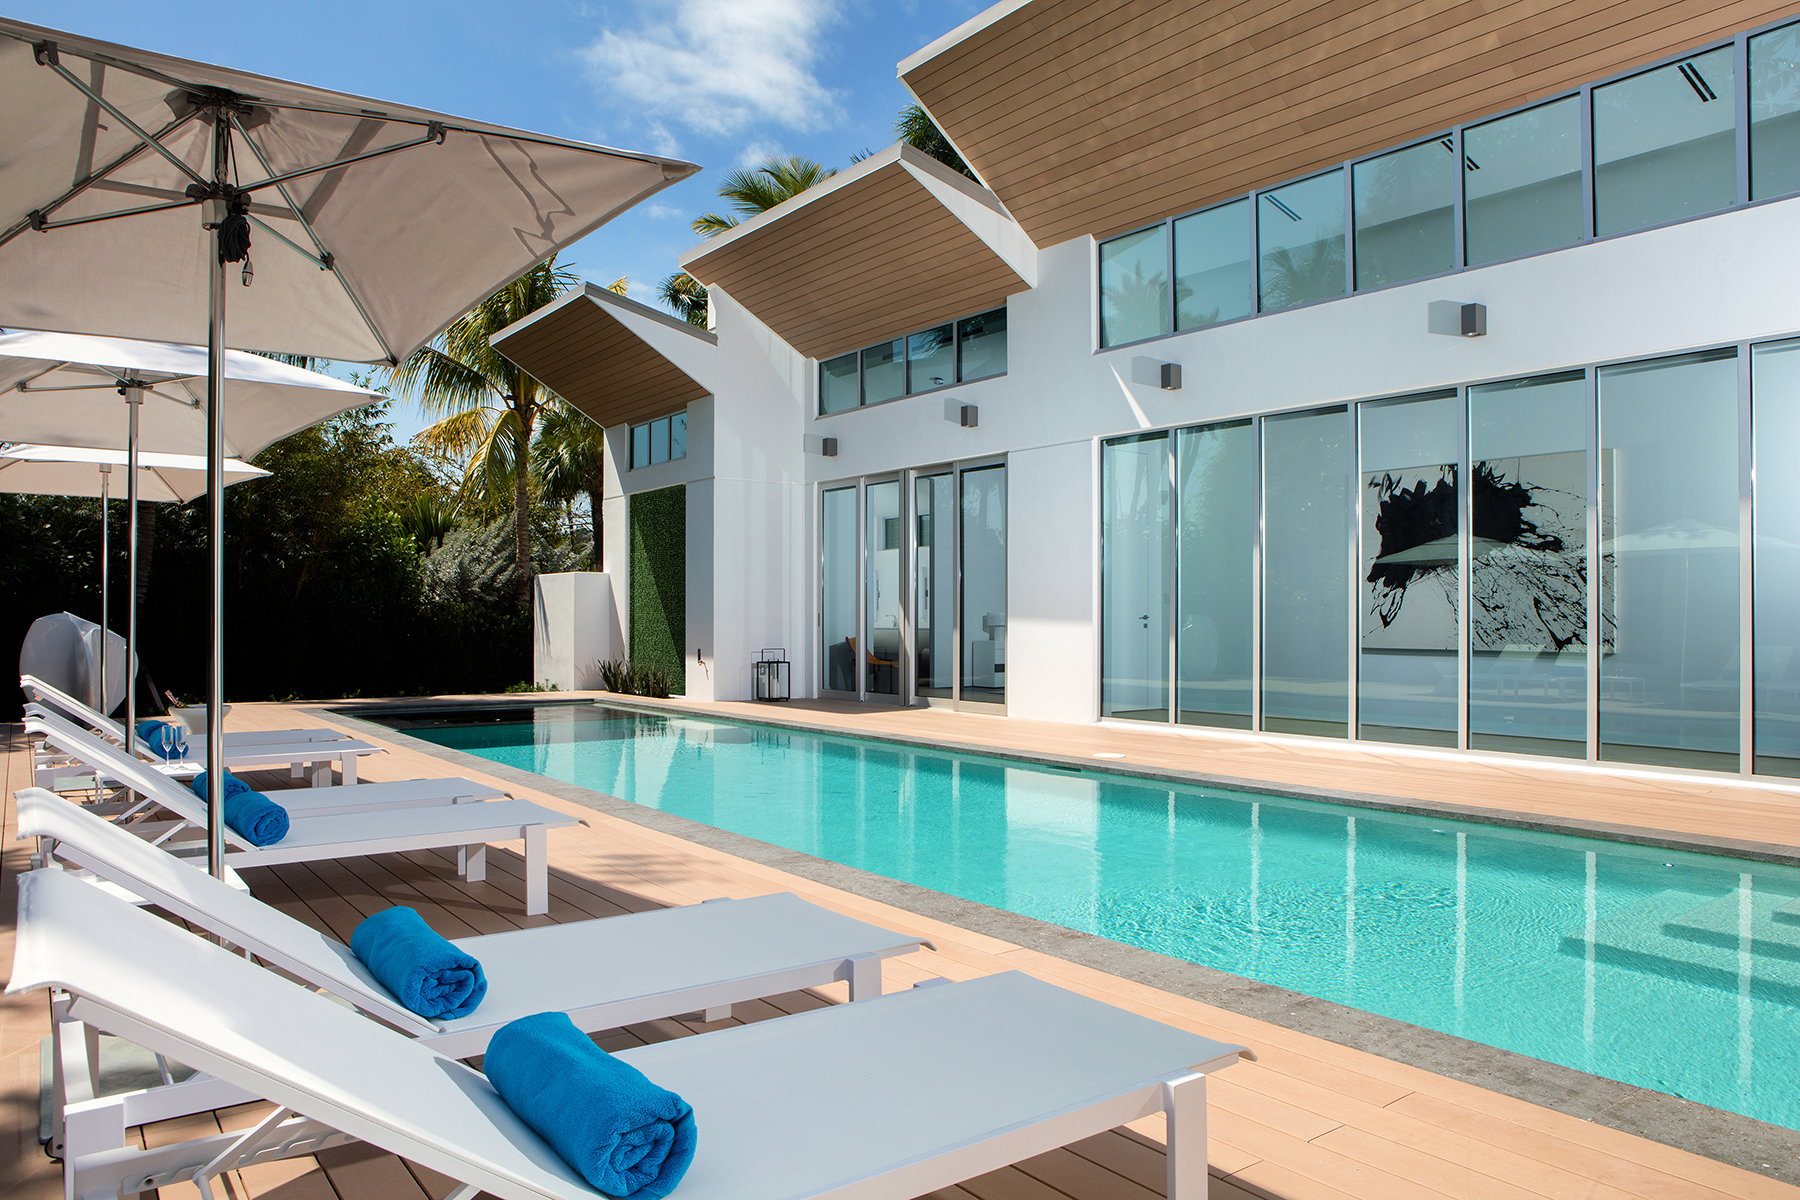 Additional photo for property listing at AQUALANE SHORES 2211  South Winds Dr,  Naples, Florida 34102 United States